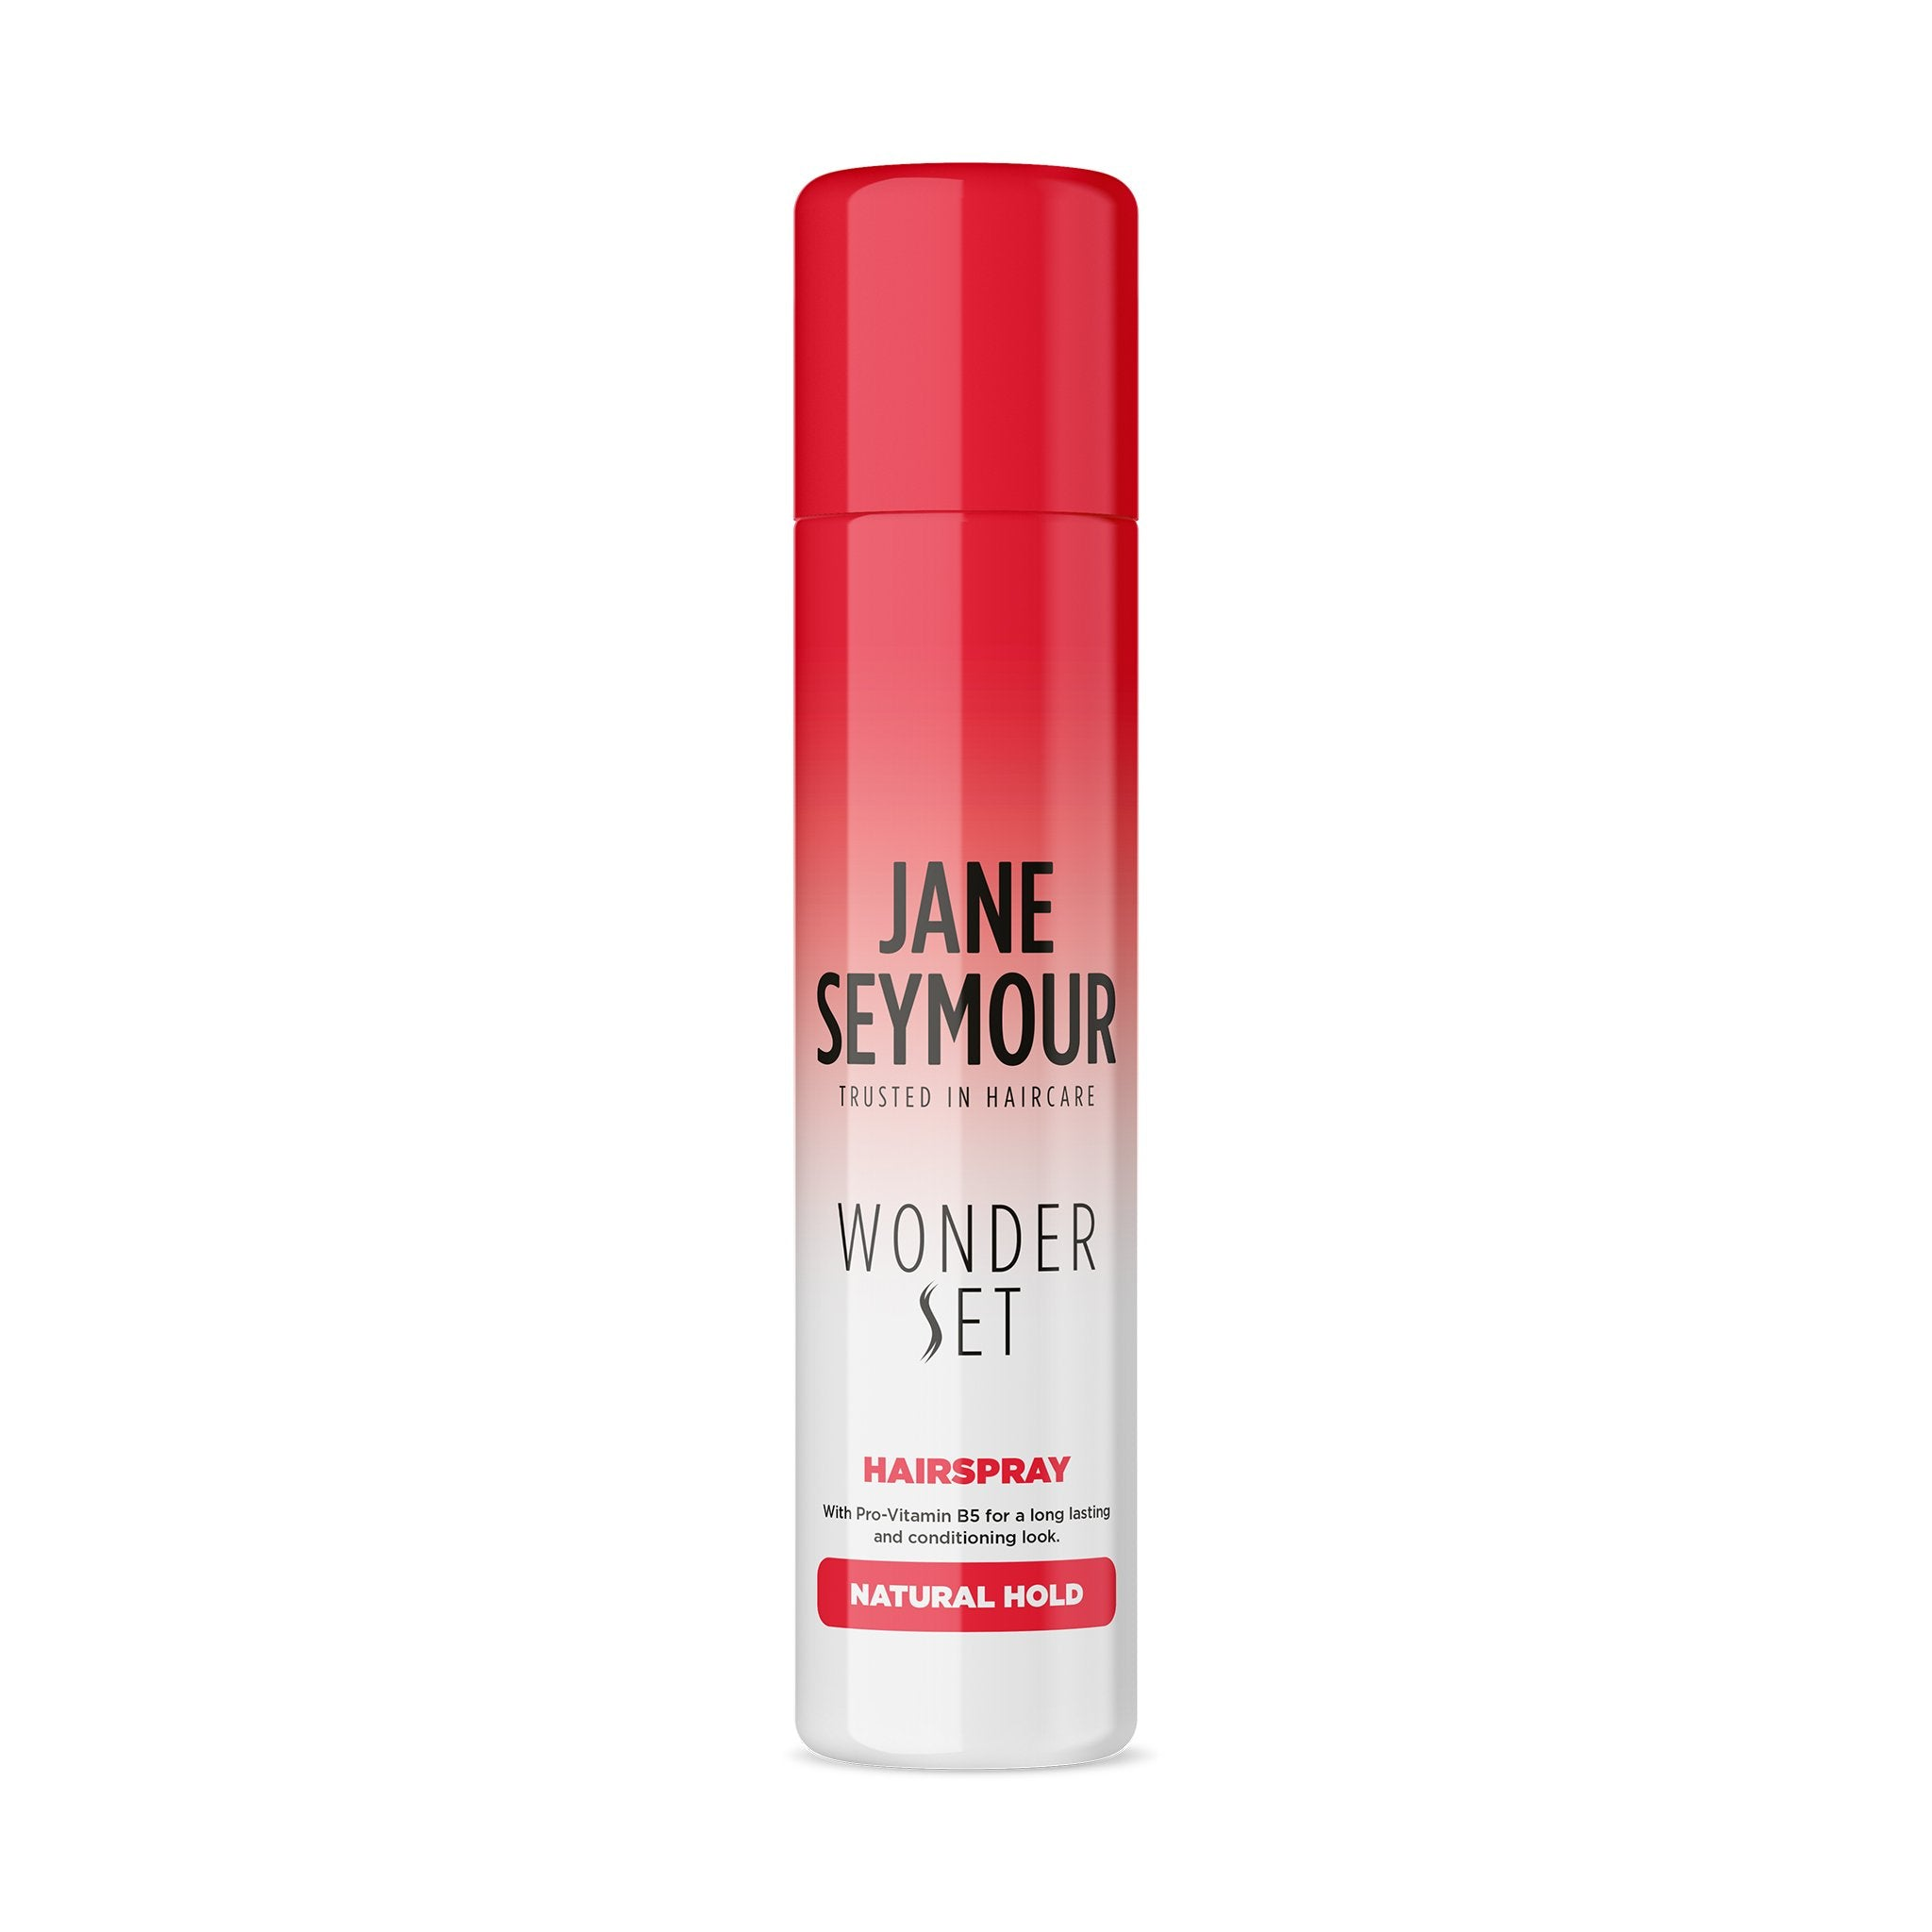 Jane Seymour Wonderset Natural Hold Hairspray- 300ml